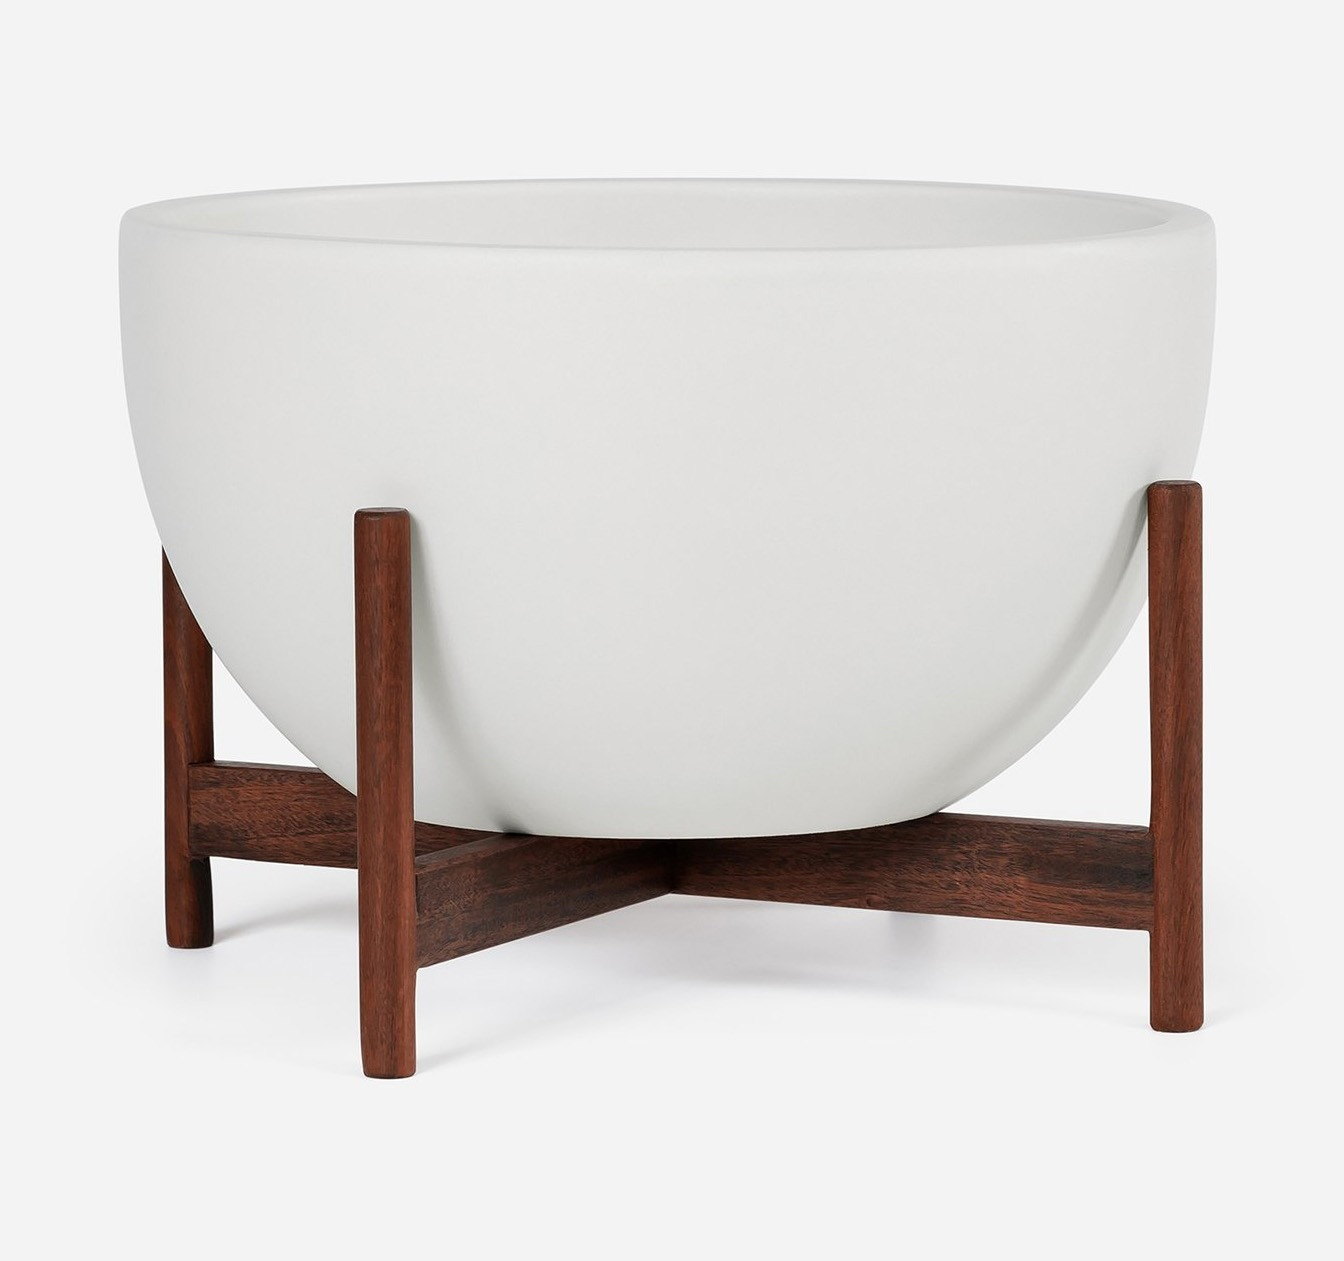 Modernica Case Study® Ceramics Small Bowl With Stand (Planter)